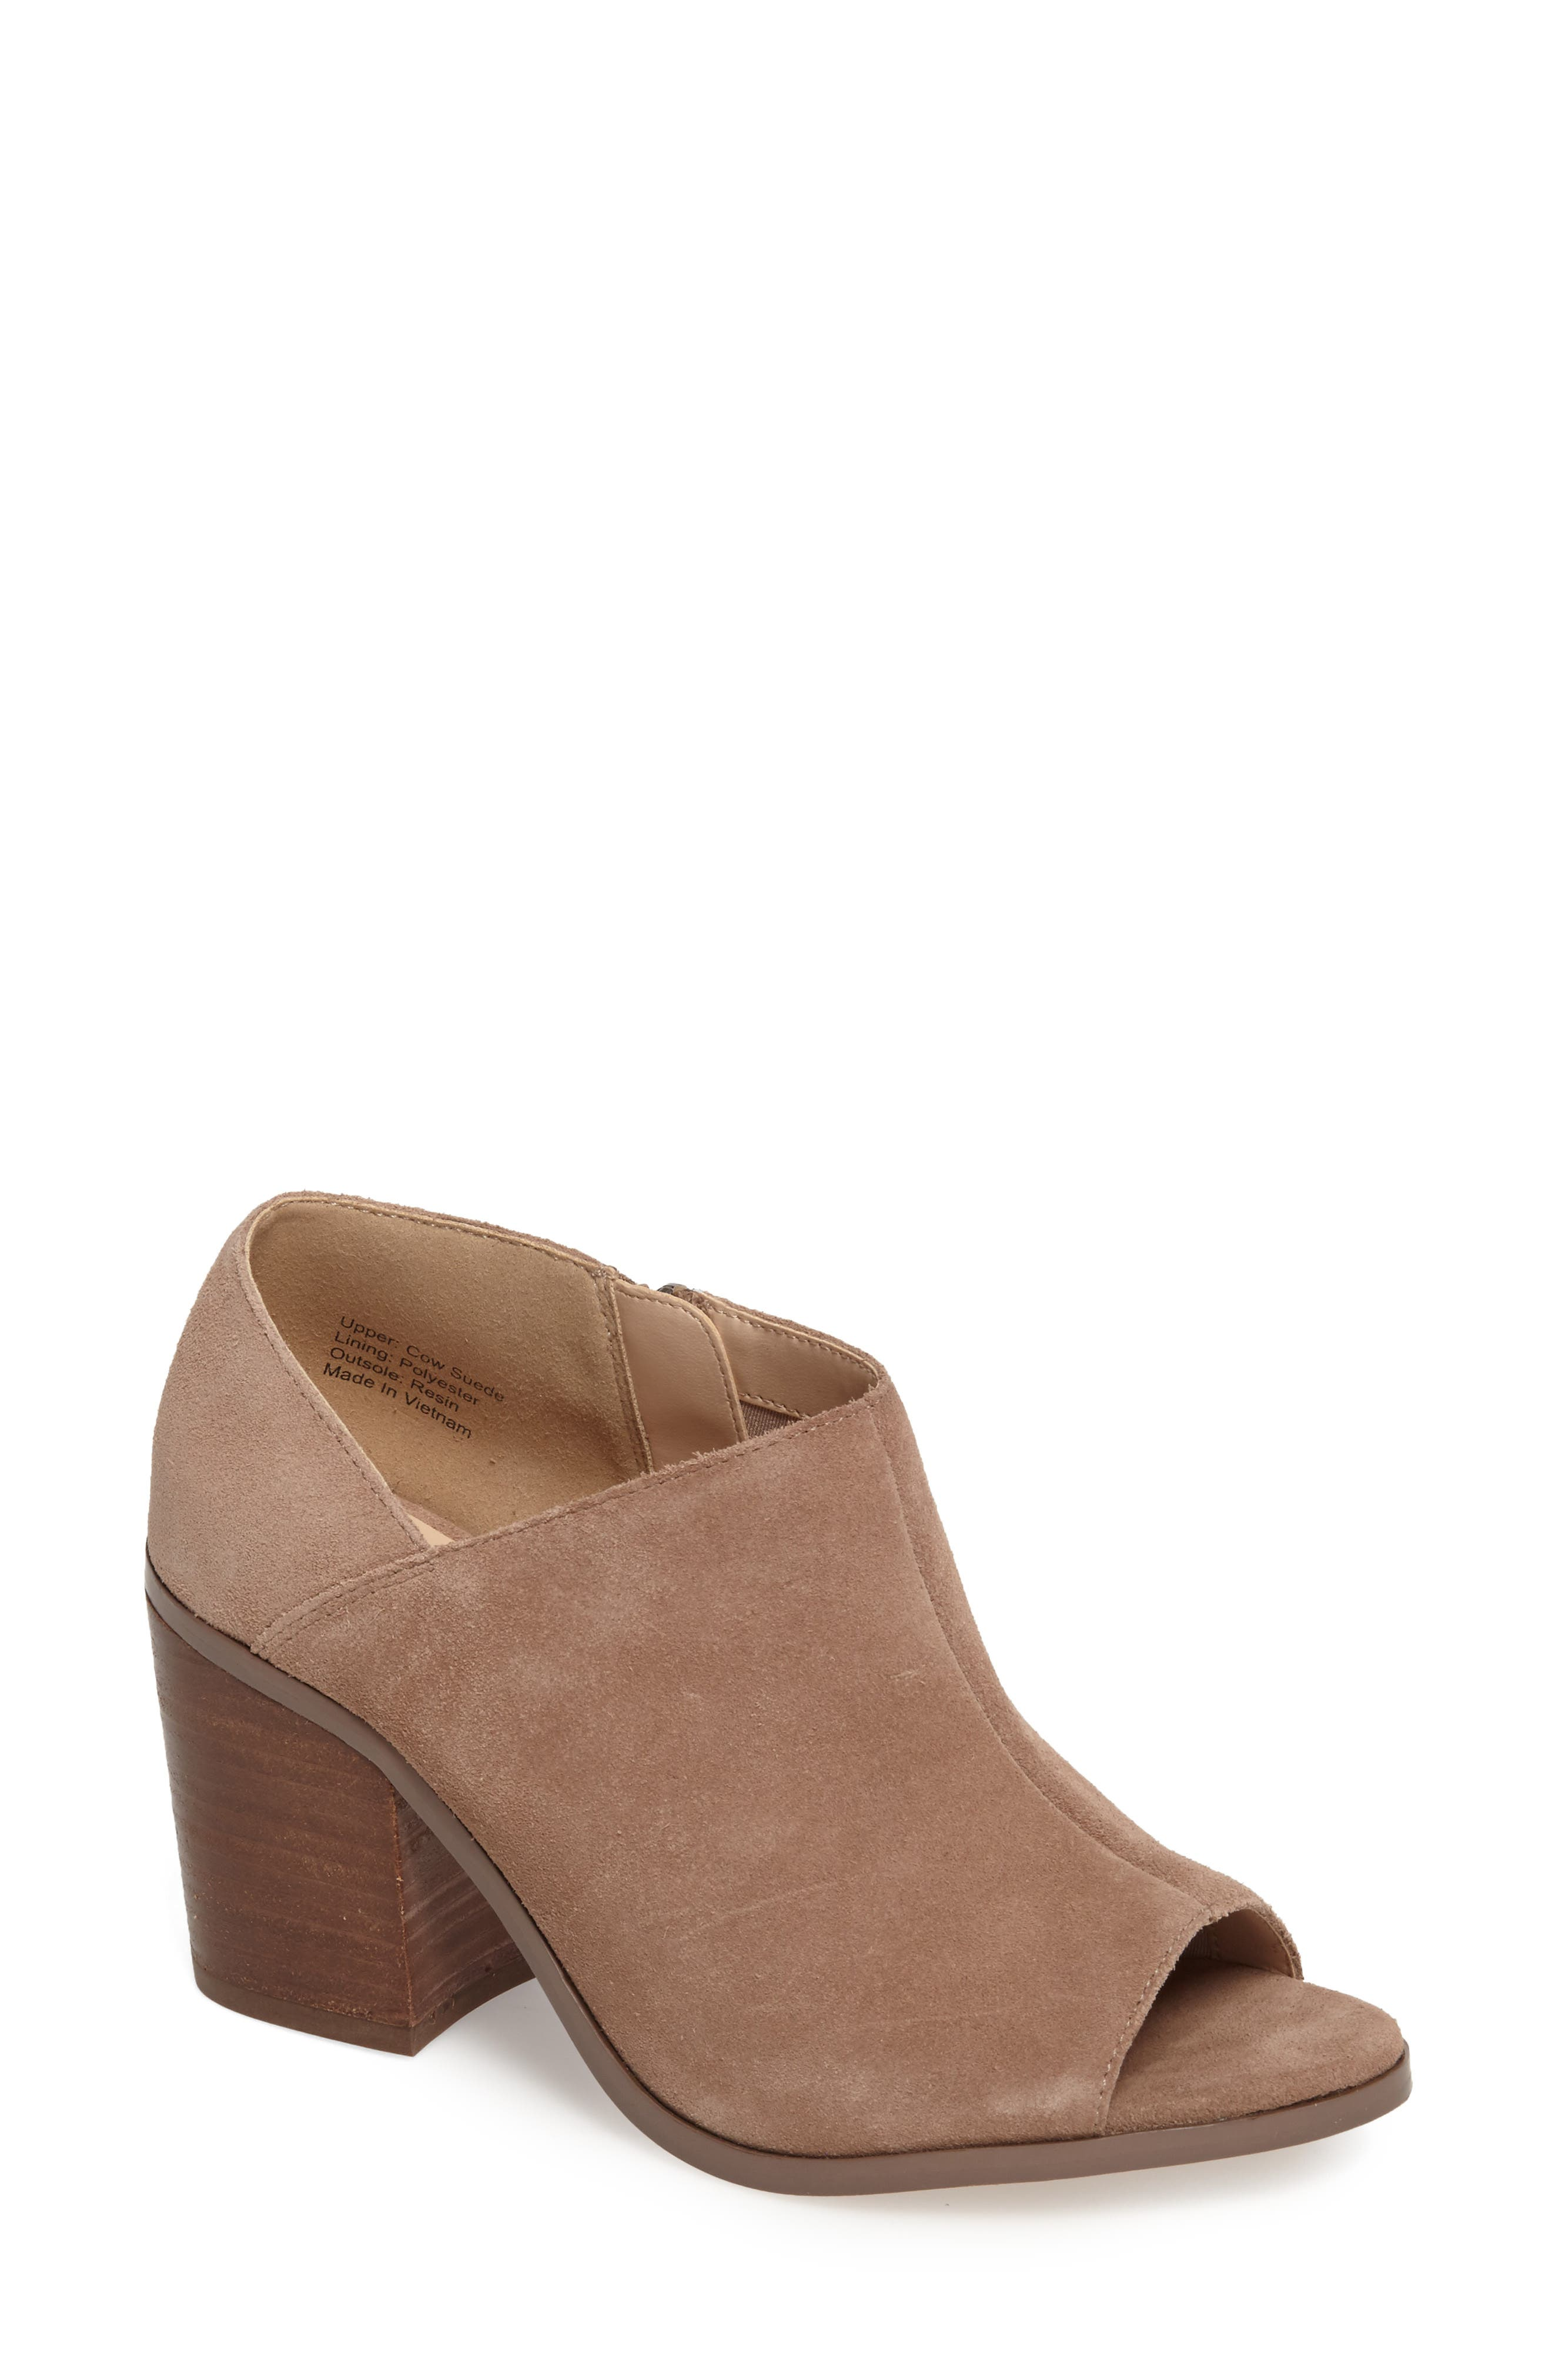 Sole Society Arroyo Peep Toe Bootie (Women)